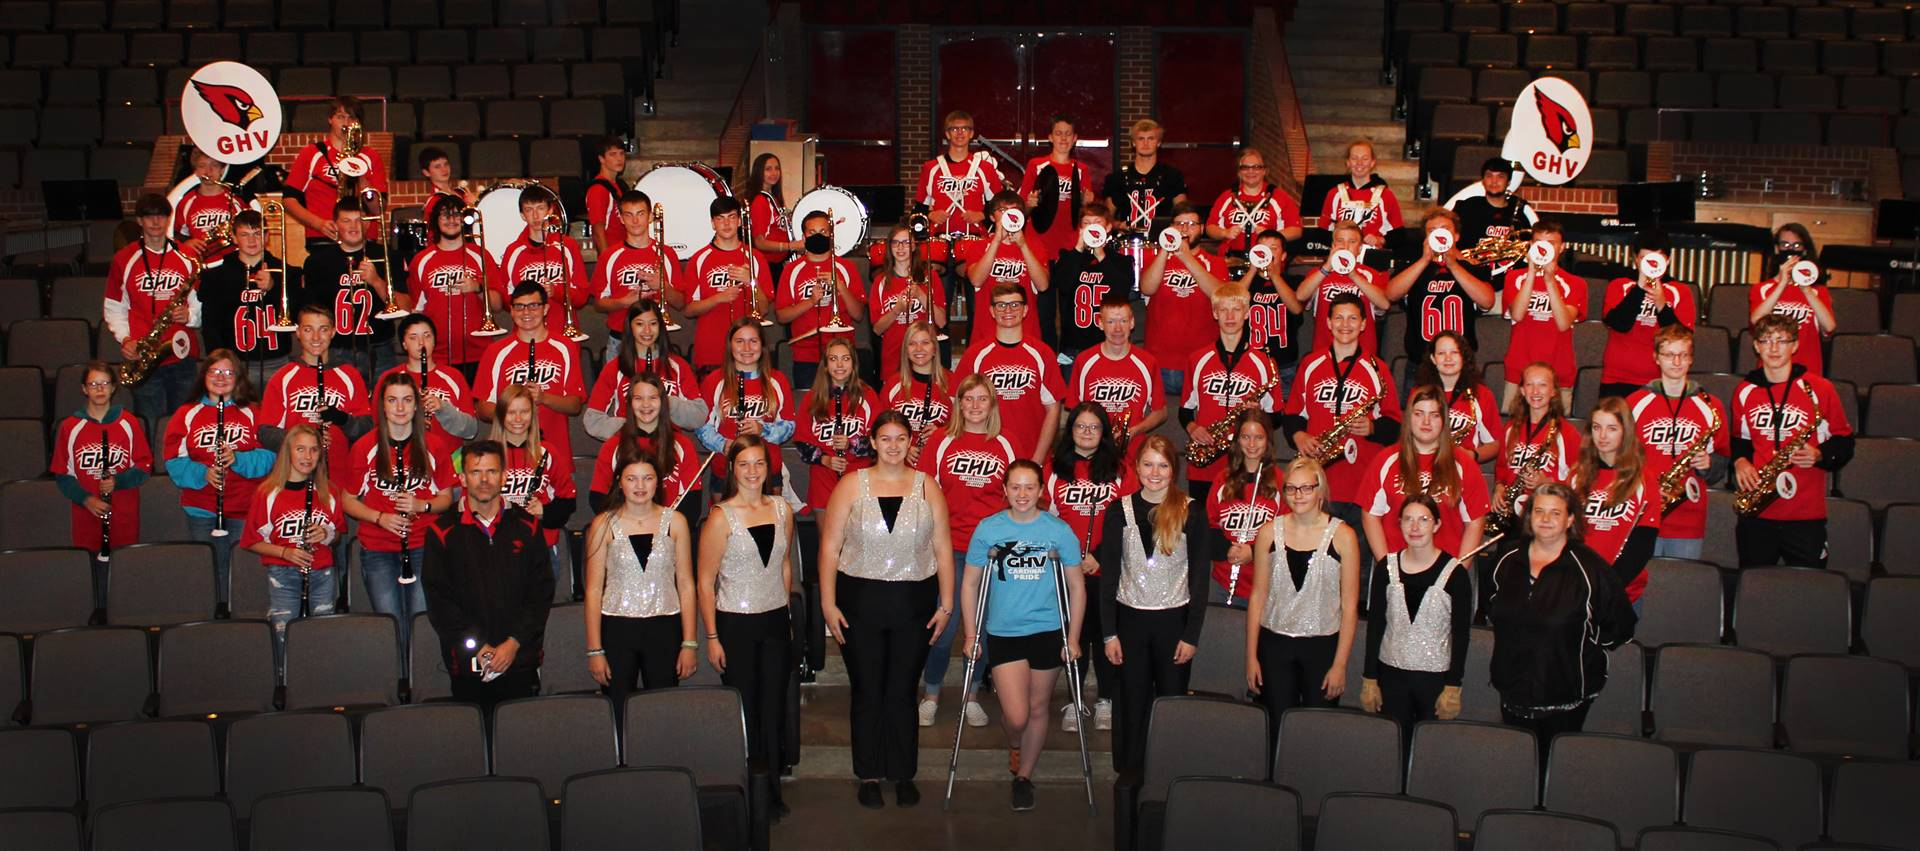 High school band posing for a photo in the auditorium